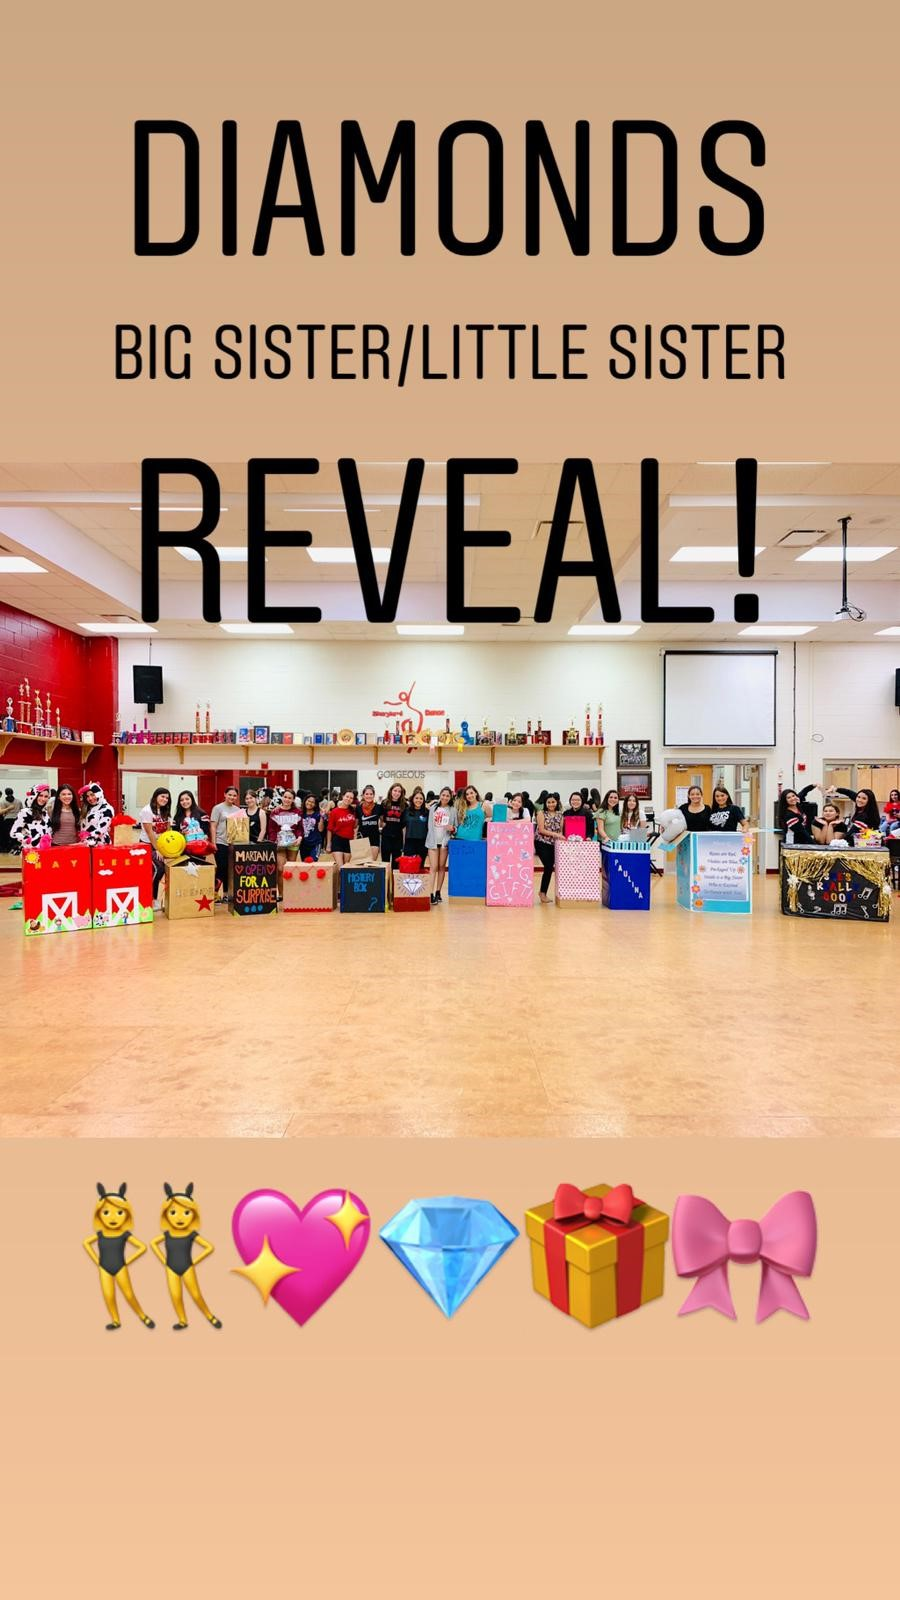 Big Sister and Little Sister Reveal